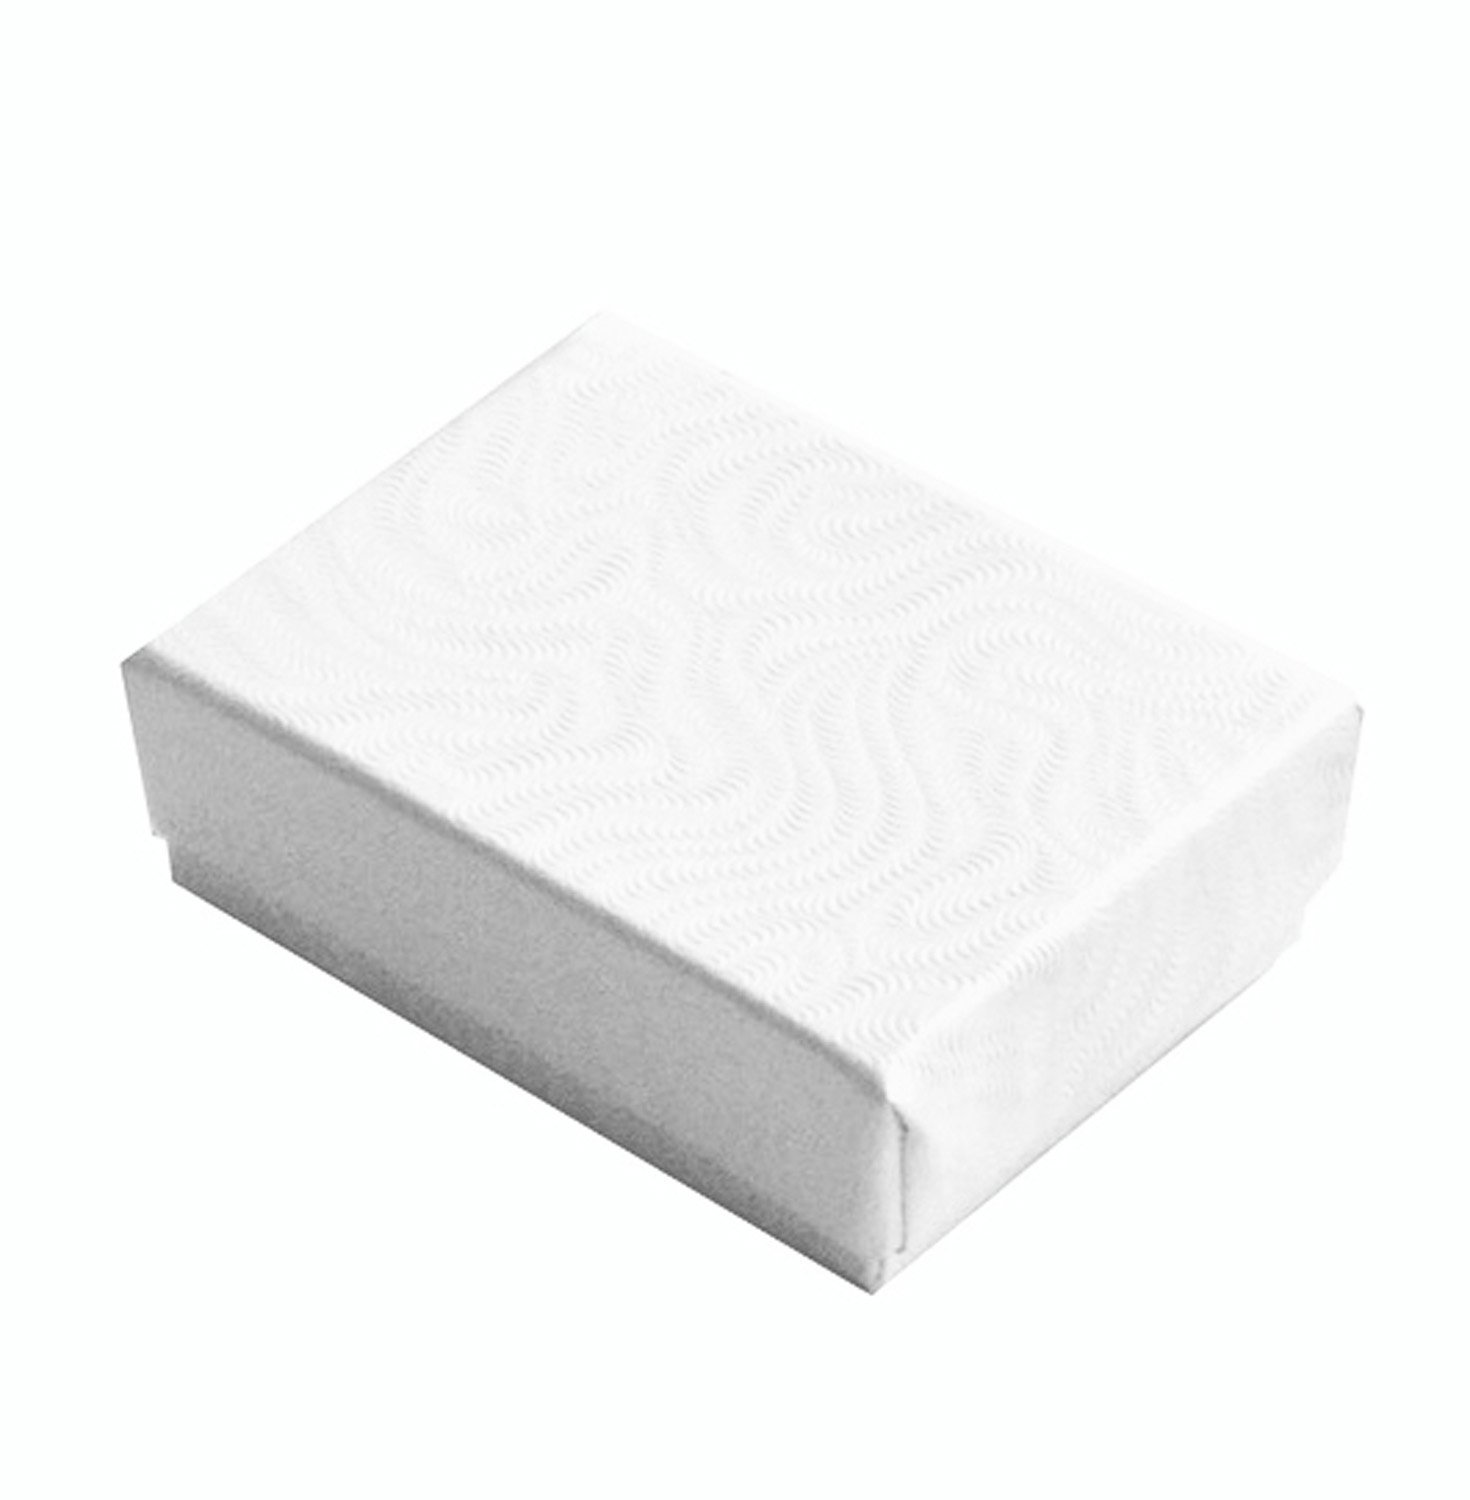 Lot of 25 pcs 1 7/8'' x 1 1/4'' x 5/8'' White Cotton Filled Jewelry Boxes